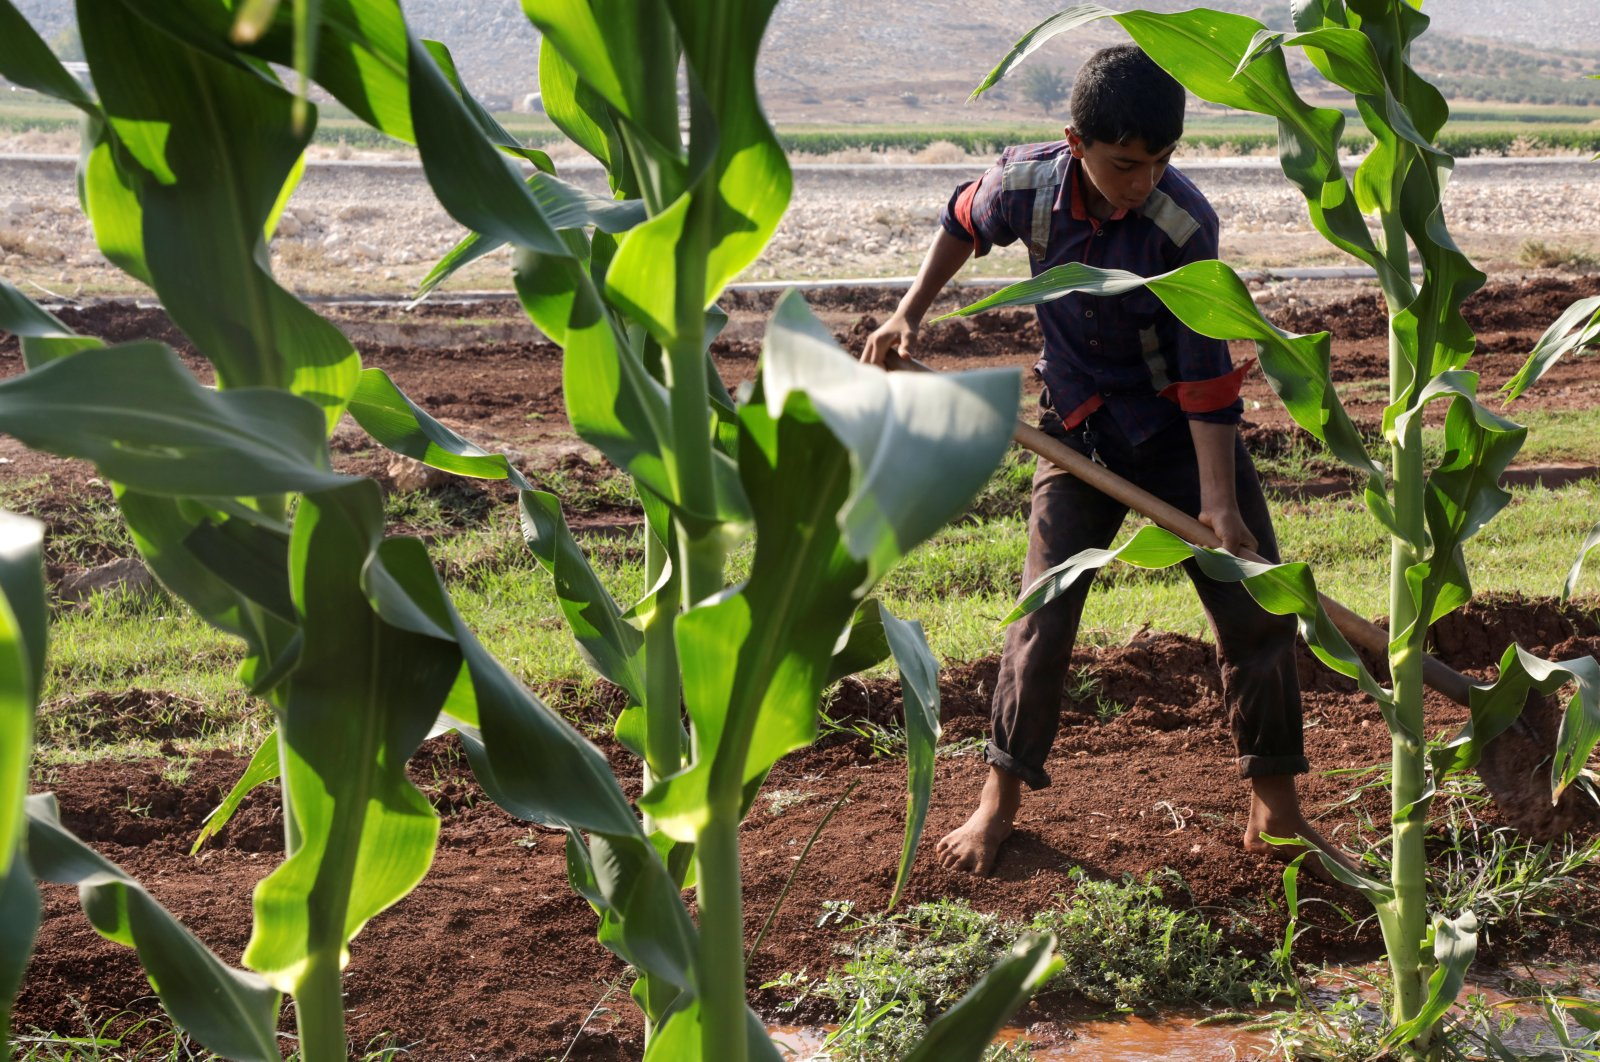 An internally displaced Syrian boy works in a field in the Aleppo countryside, Syria, Aug. 29, 2021. (Reuters Photo)